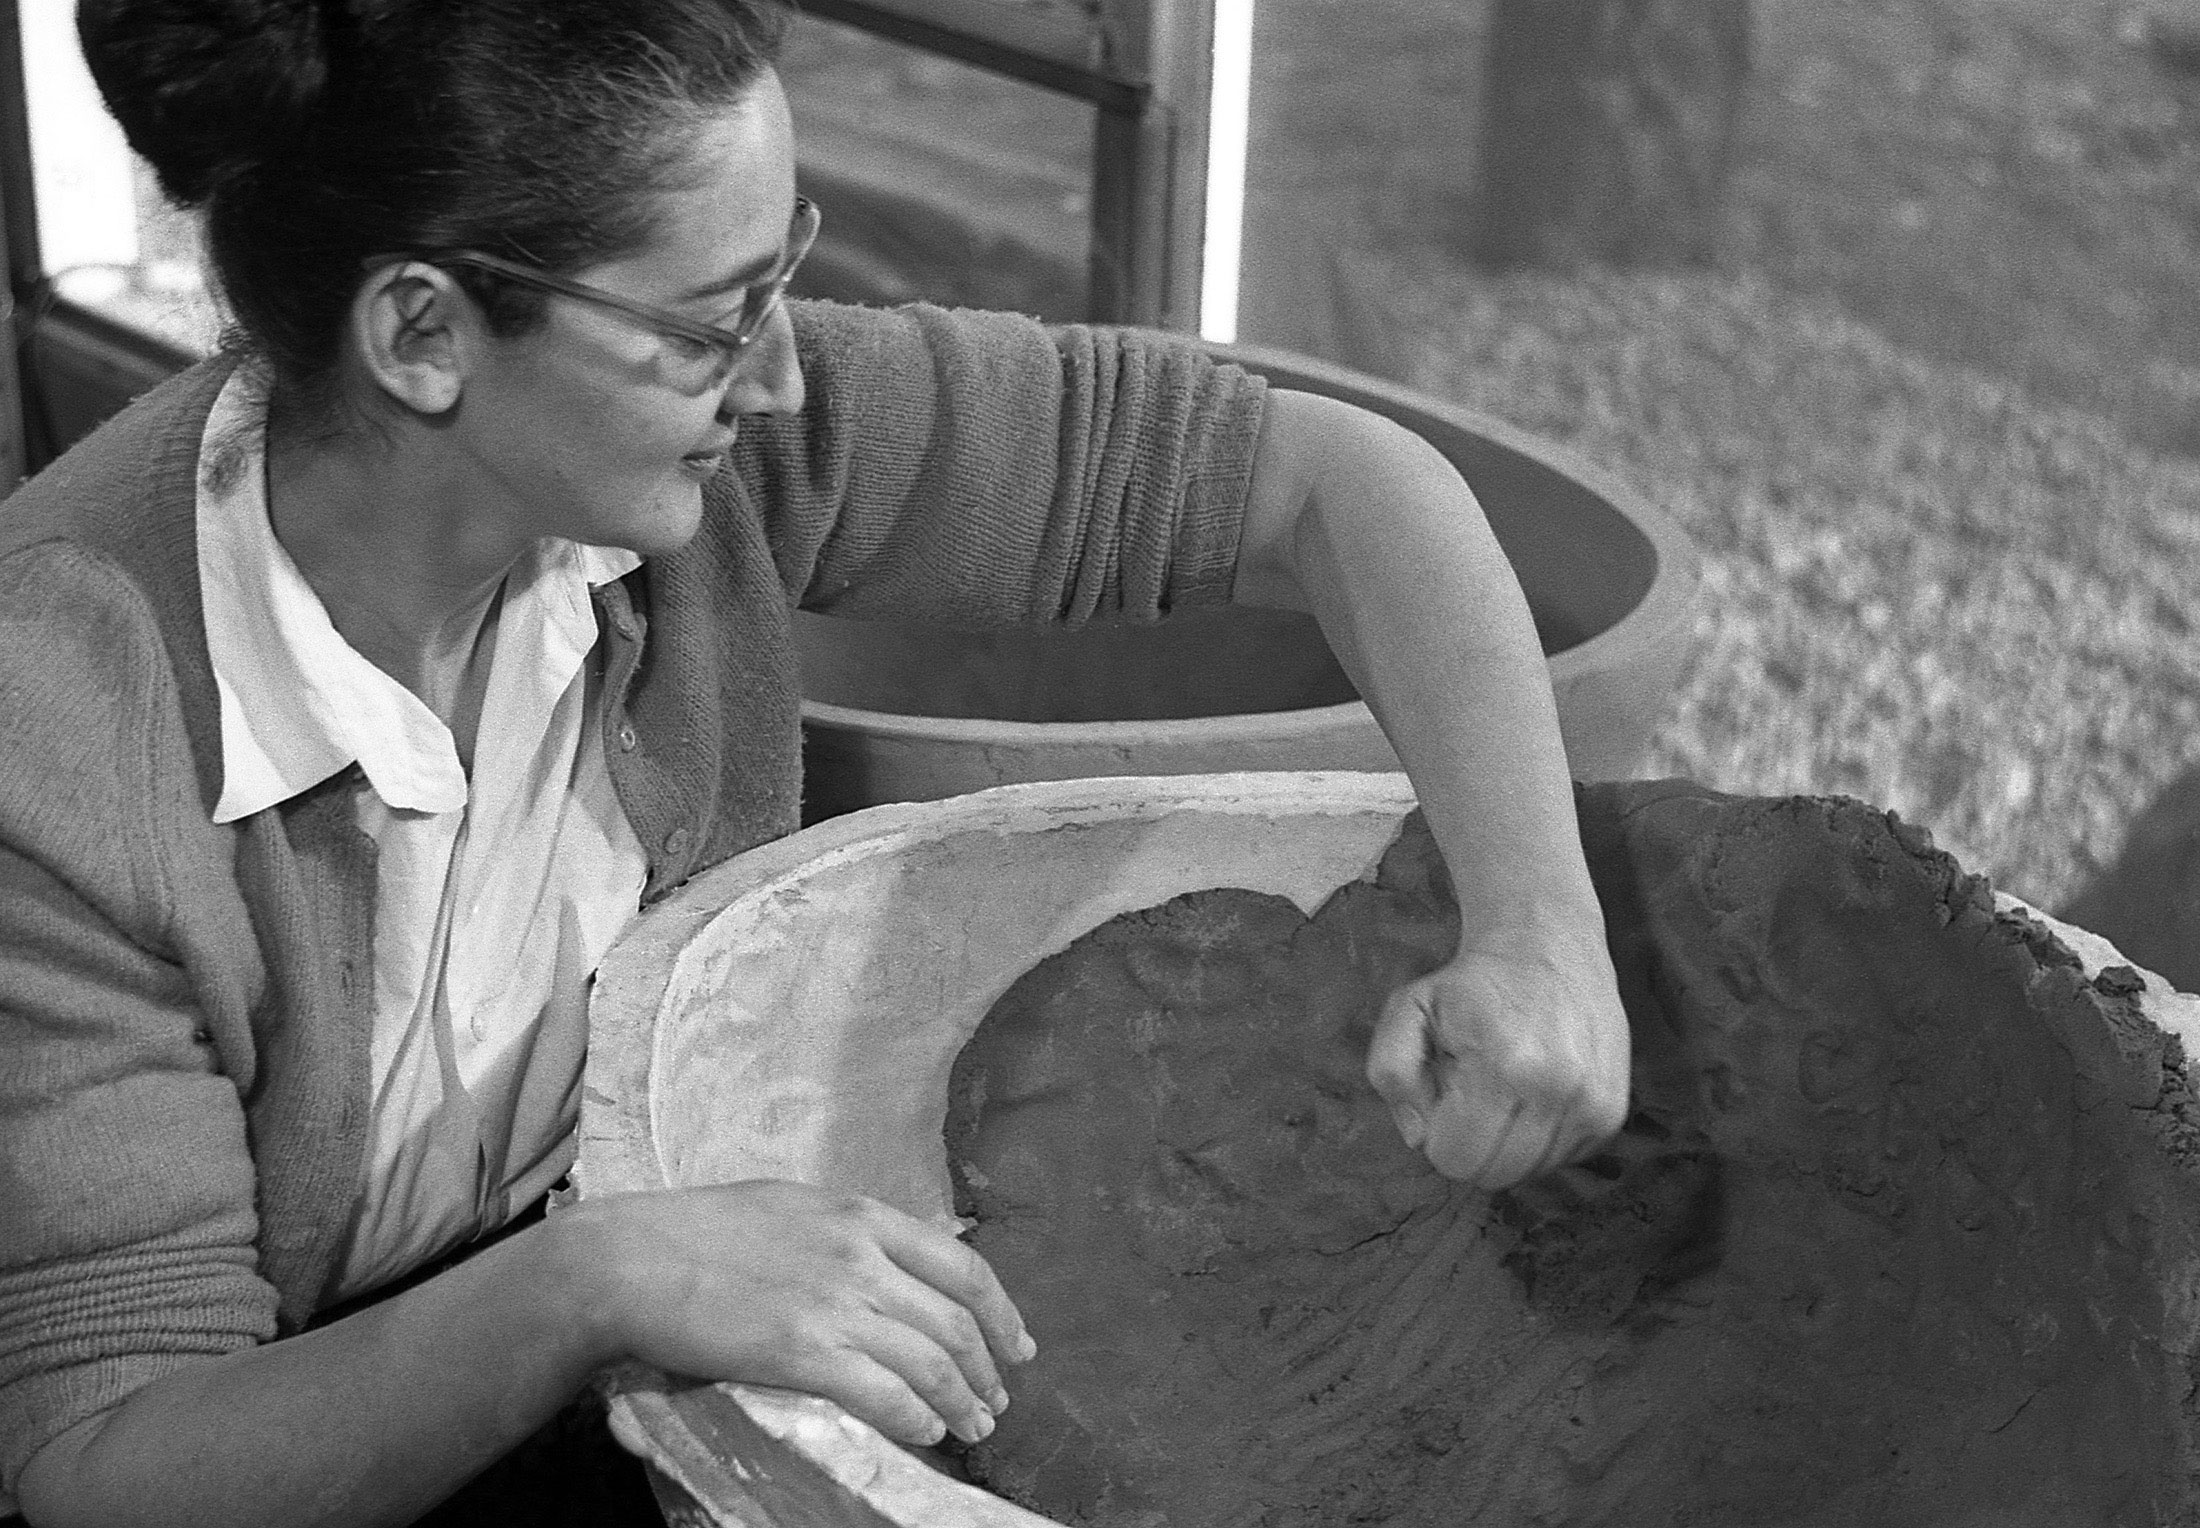 Karen Karnes working on a molded planter, 1957. Photo by Ross Lowell.